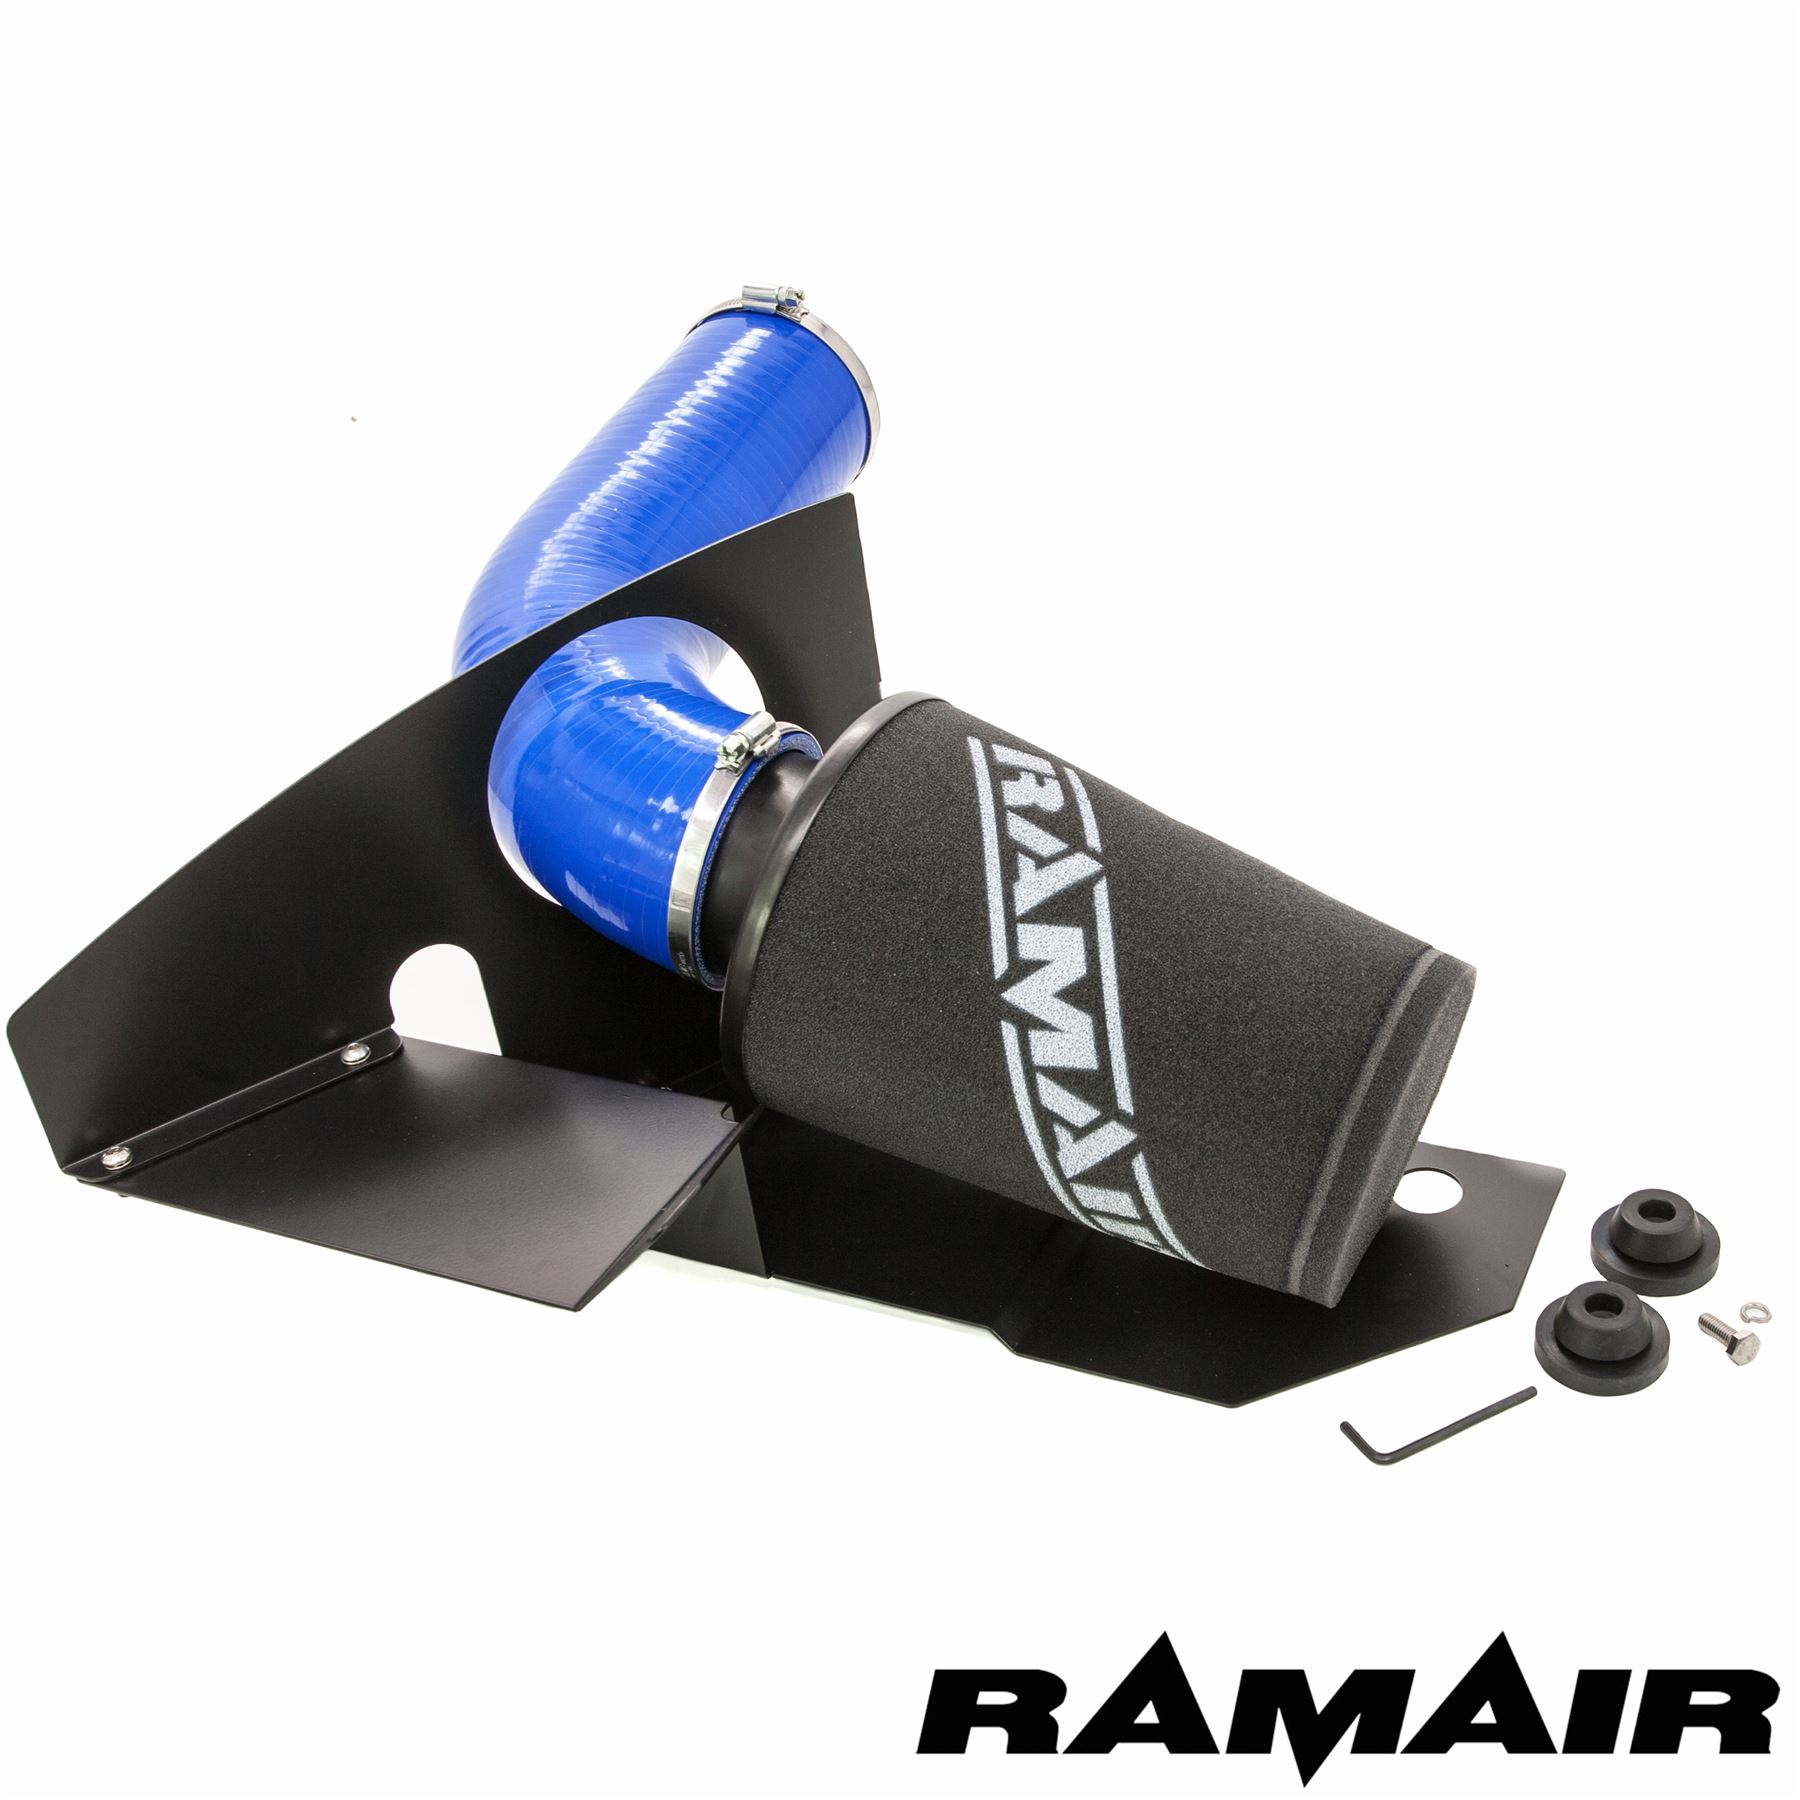 Details about Ramair Cone Air Filter Induction Intake Kit in Blue - 2 0 TSI  EA888 GTI MK6 FR